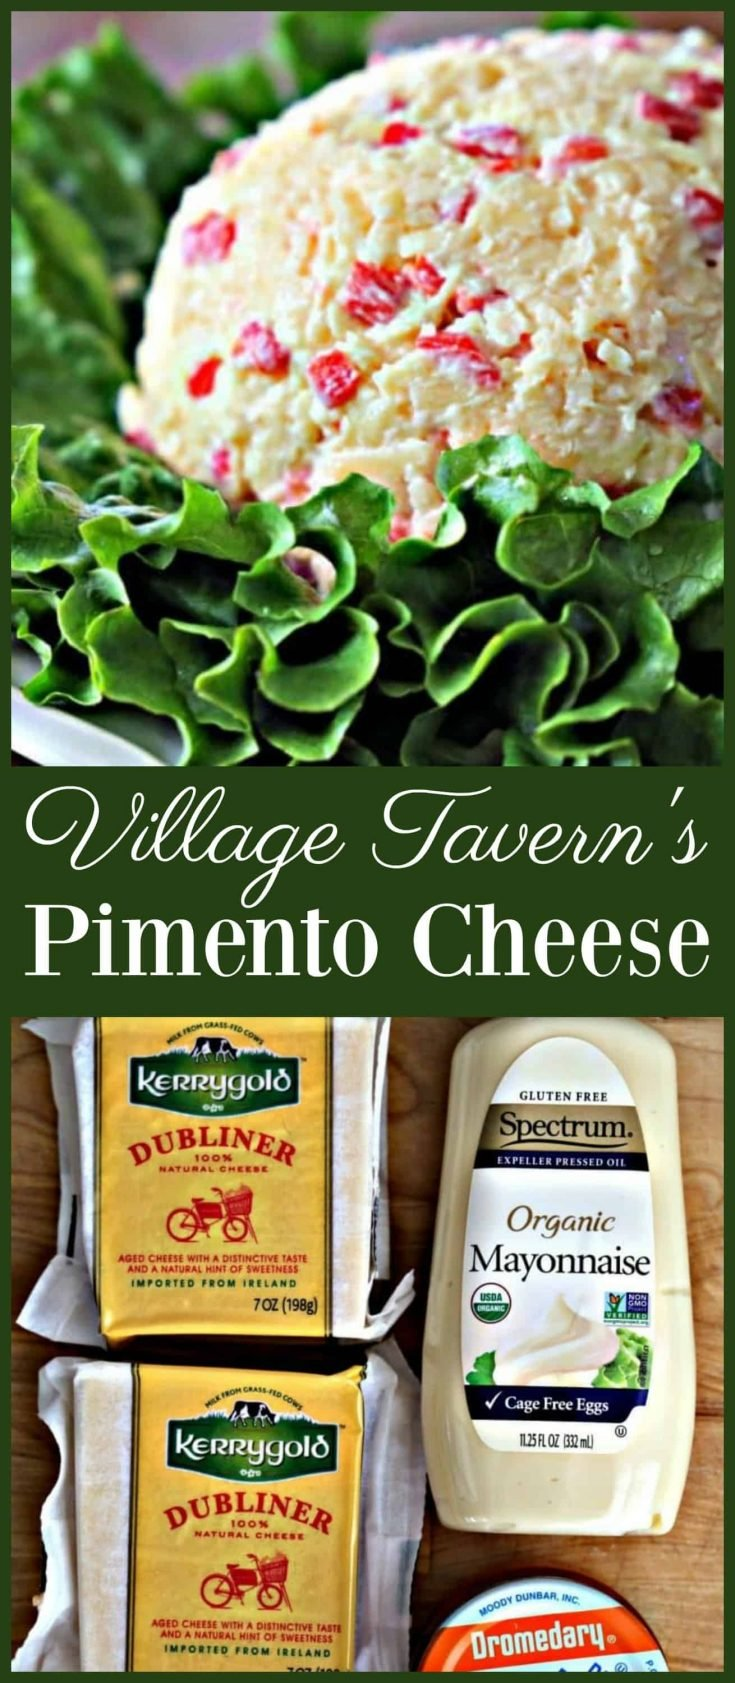 This Pimento Cheese recipe comes straight from Village Tavern.  It's creamy and delicious!